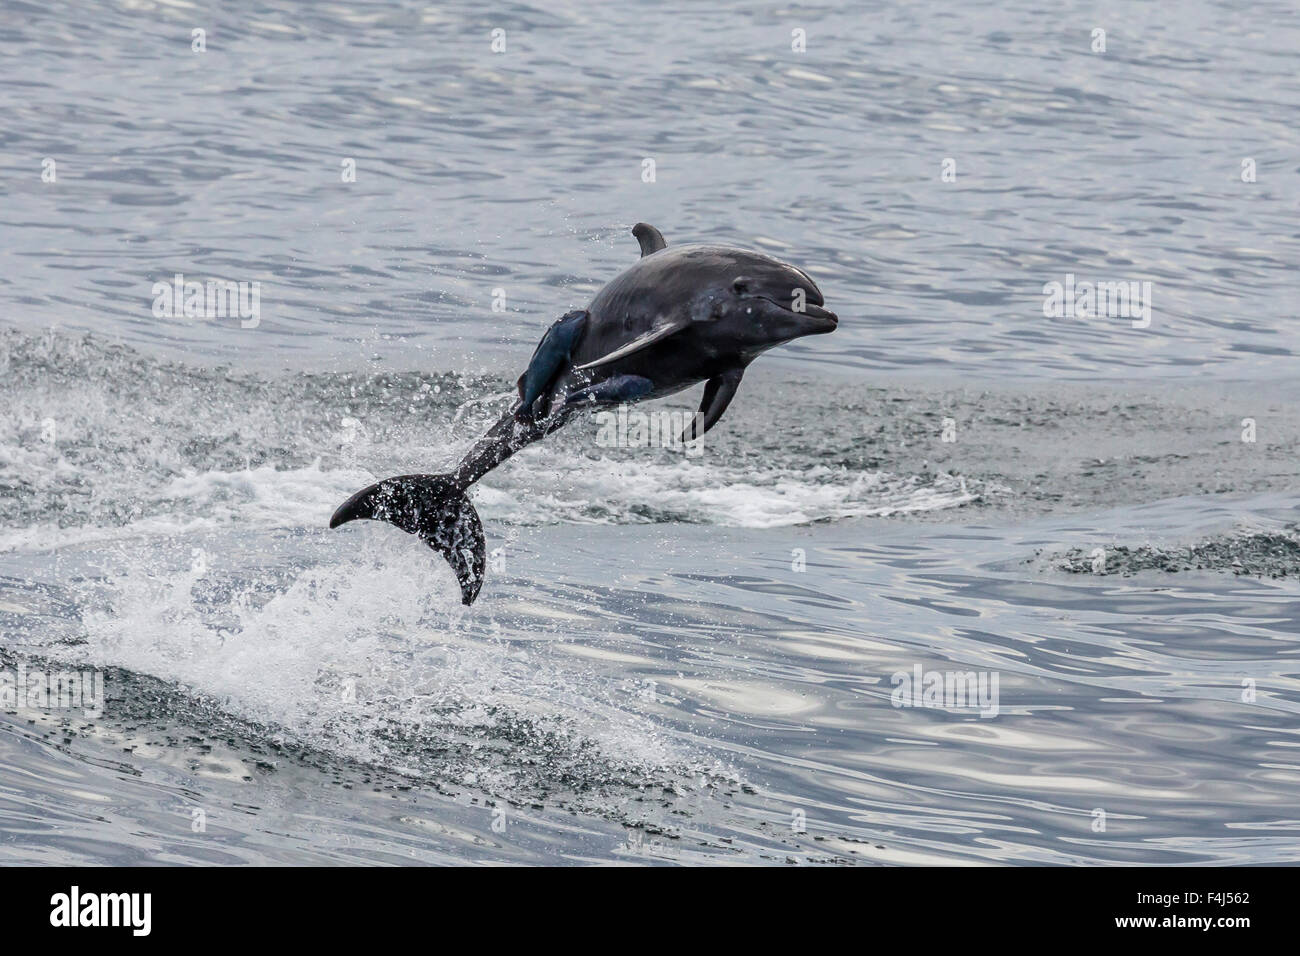 Adult bottlenose dolphin (Tursiops truncatus), leaping into the air near Santa Rosalia, Baja California Sur, Mexico - Stock Image